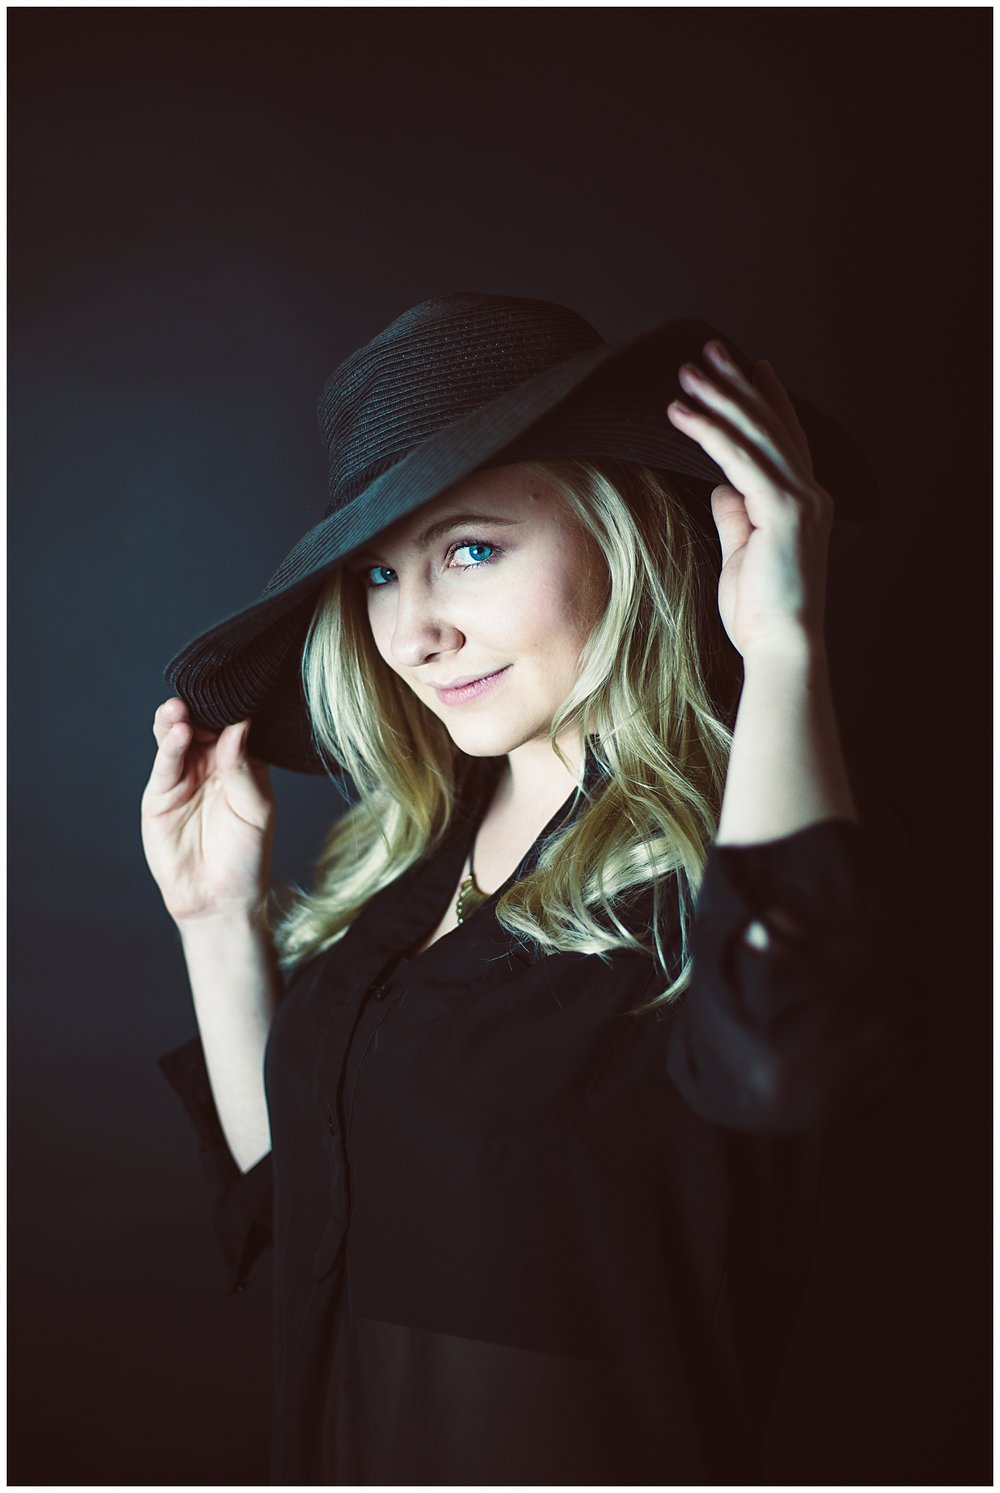 Black hat- fashion photoshoot